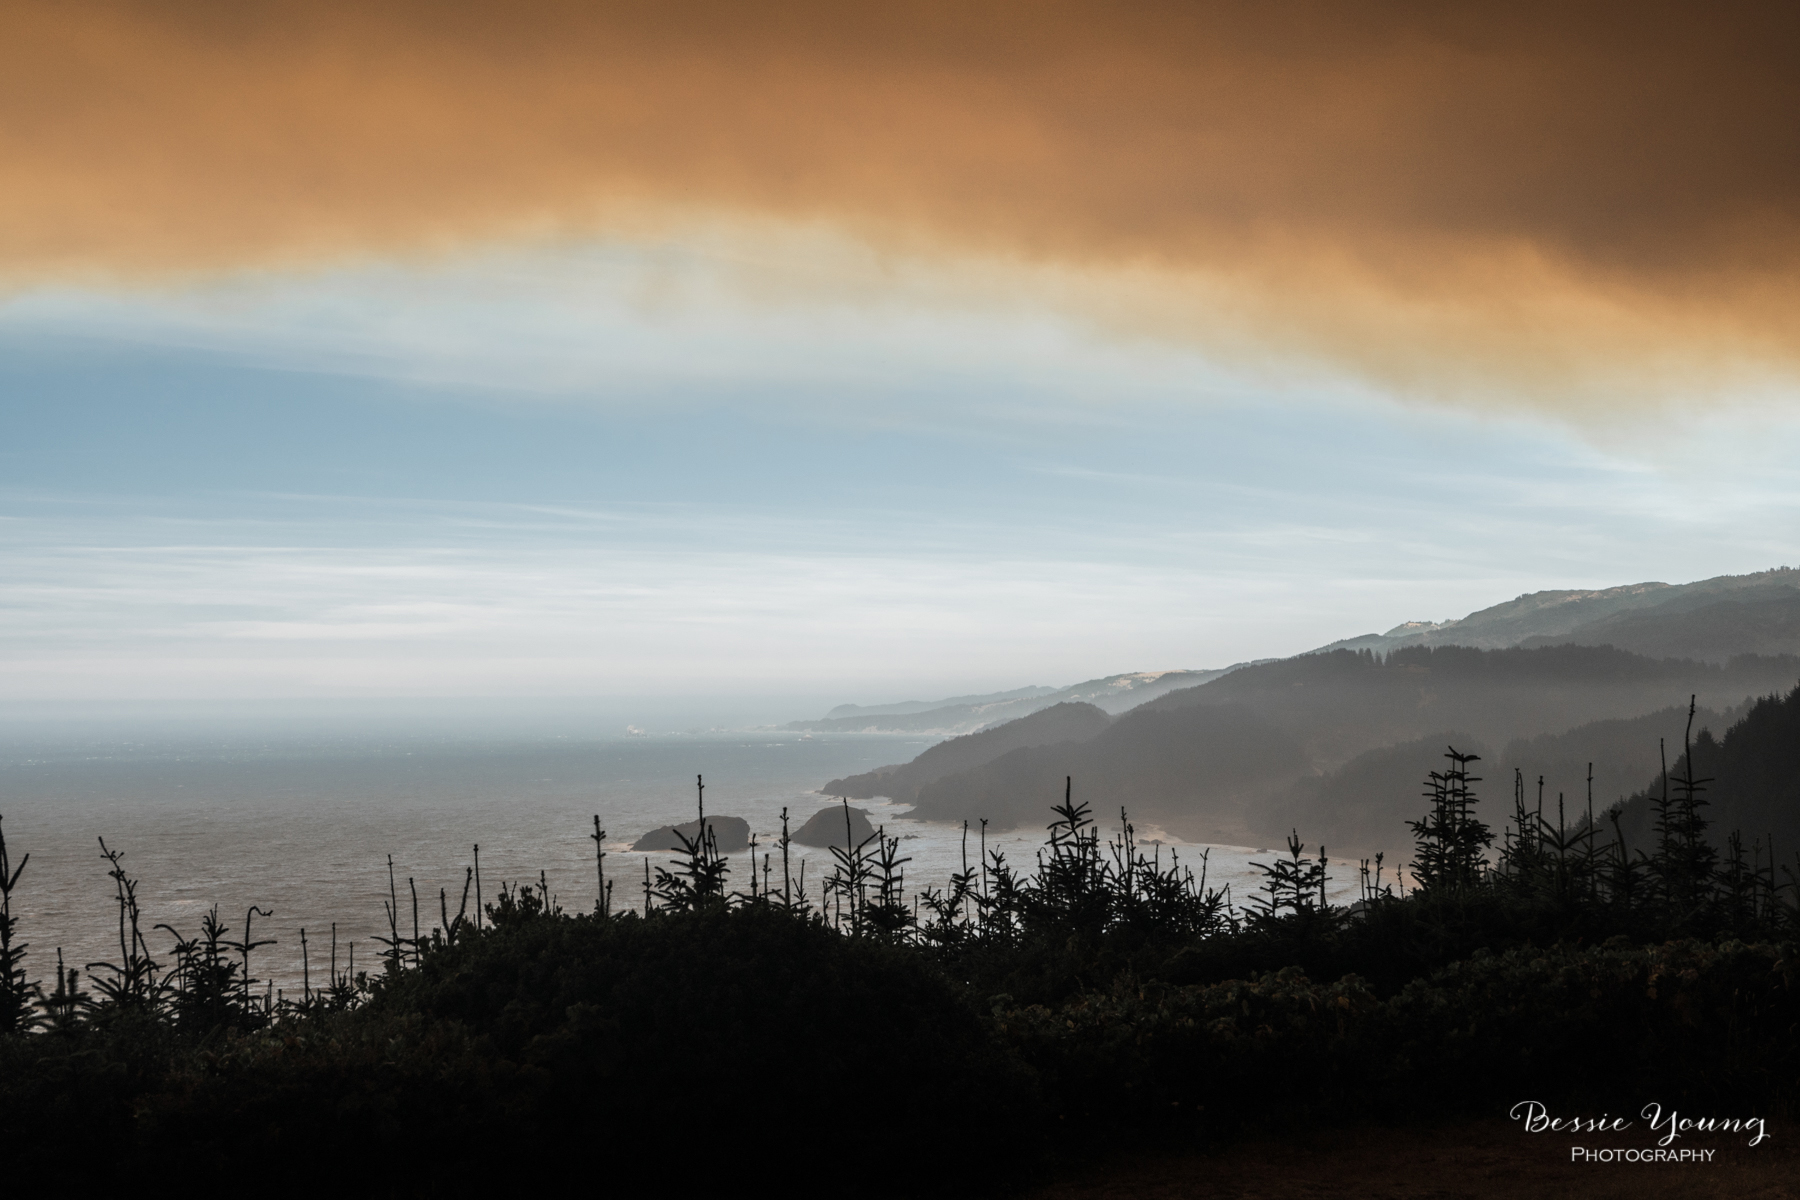 Chetco Bar Fire Brookings Oregon 2017 - Bessie Young Photography-19.jpg